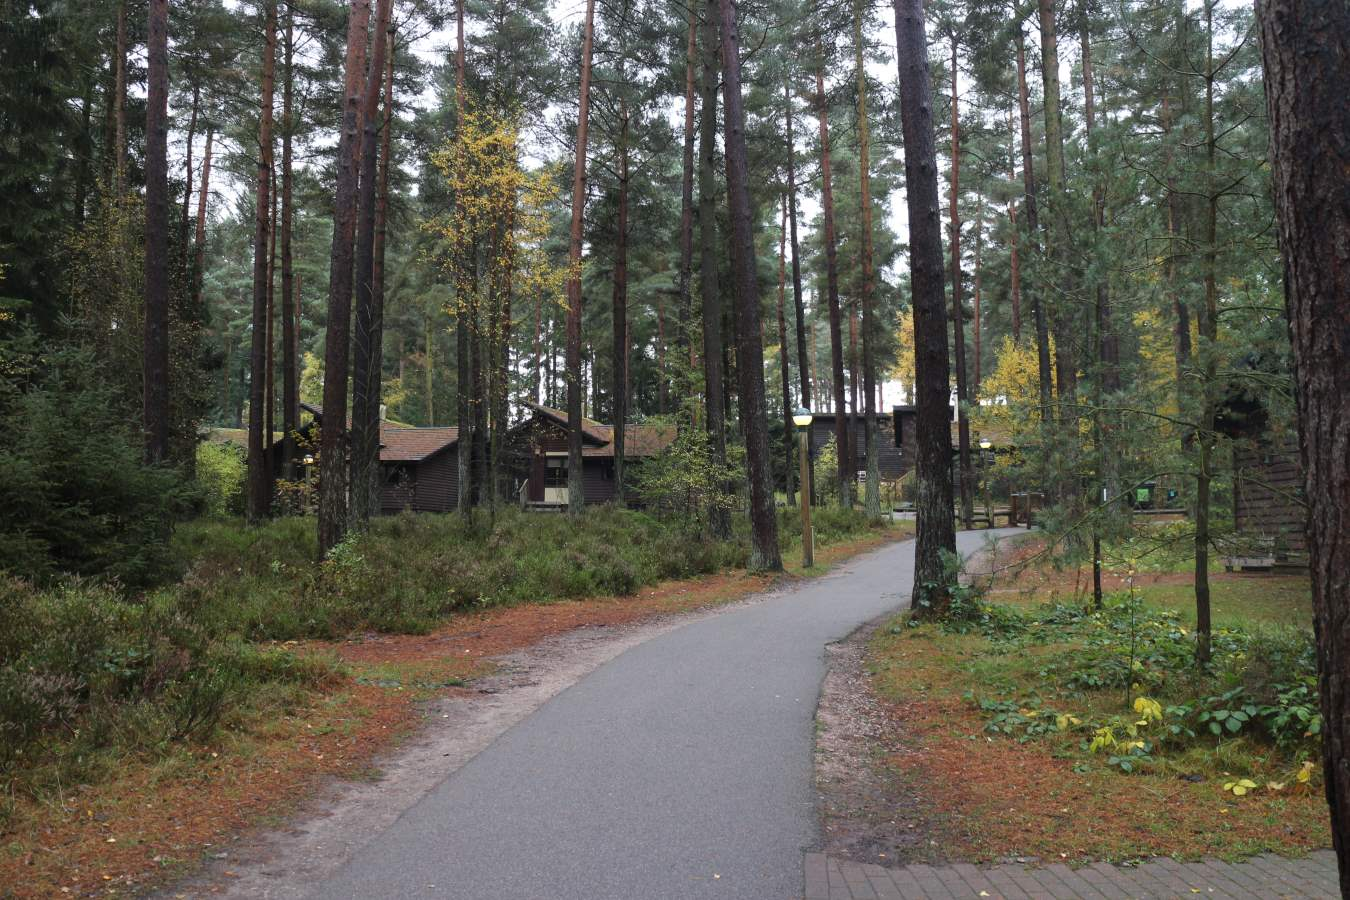 Center Parcs Whinfell Forest - Visit Cumbria